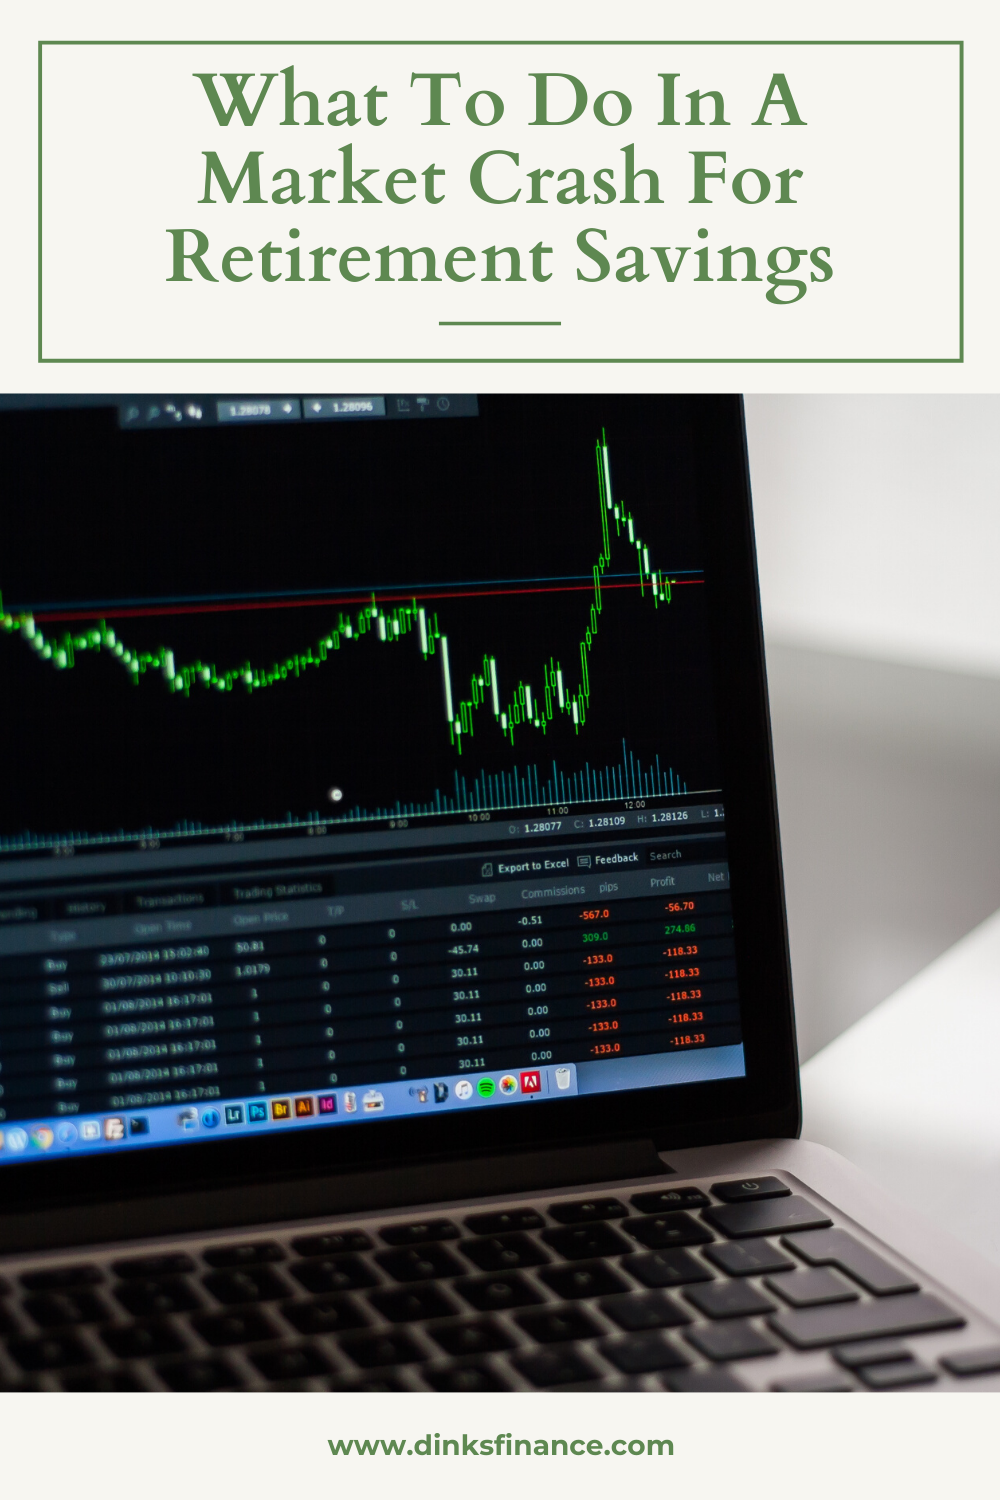 What To Do In A Market Crash For Retirement Savings